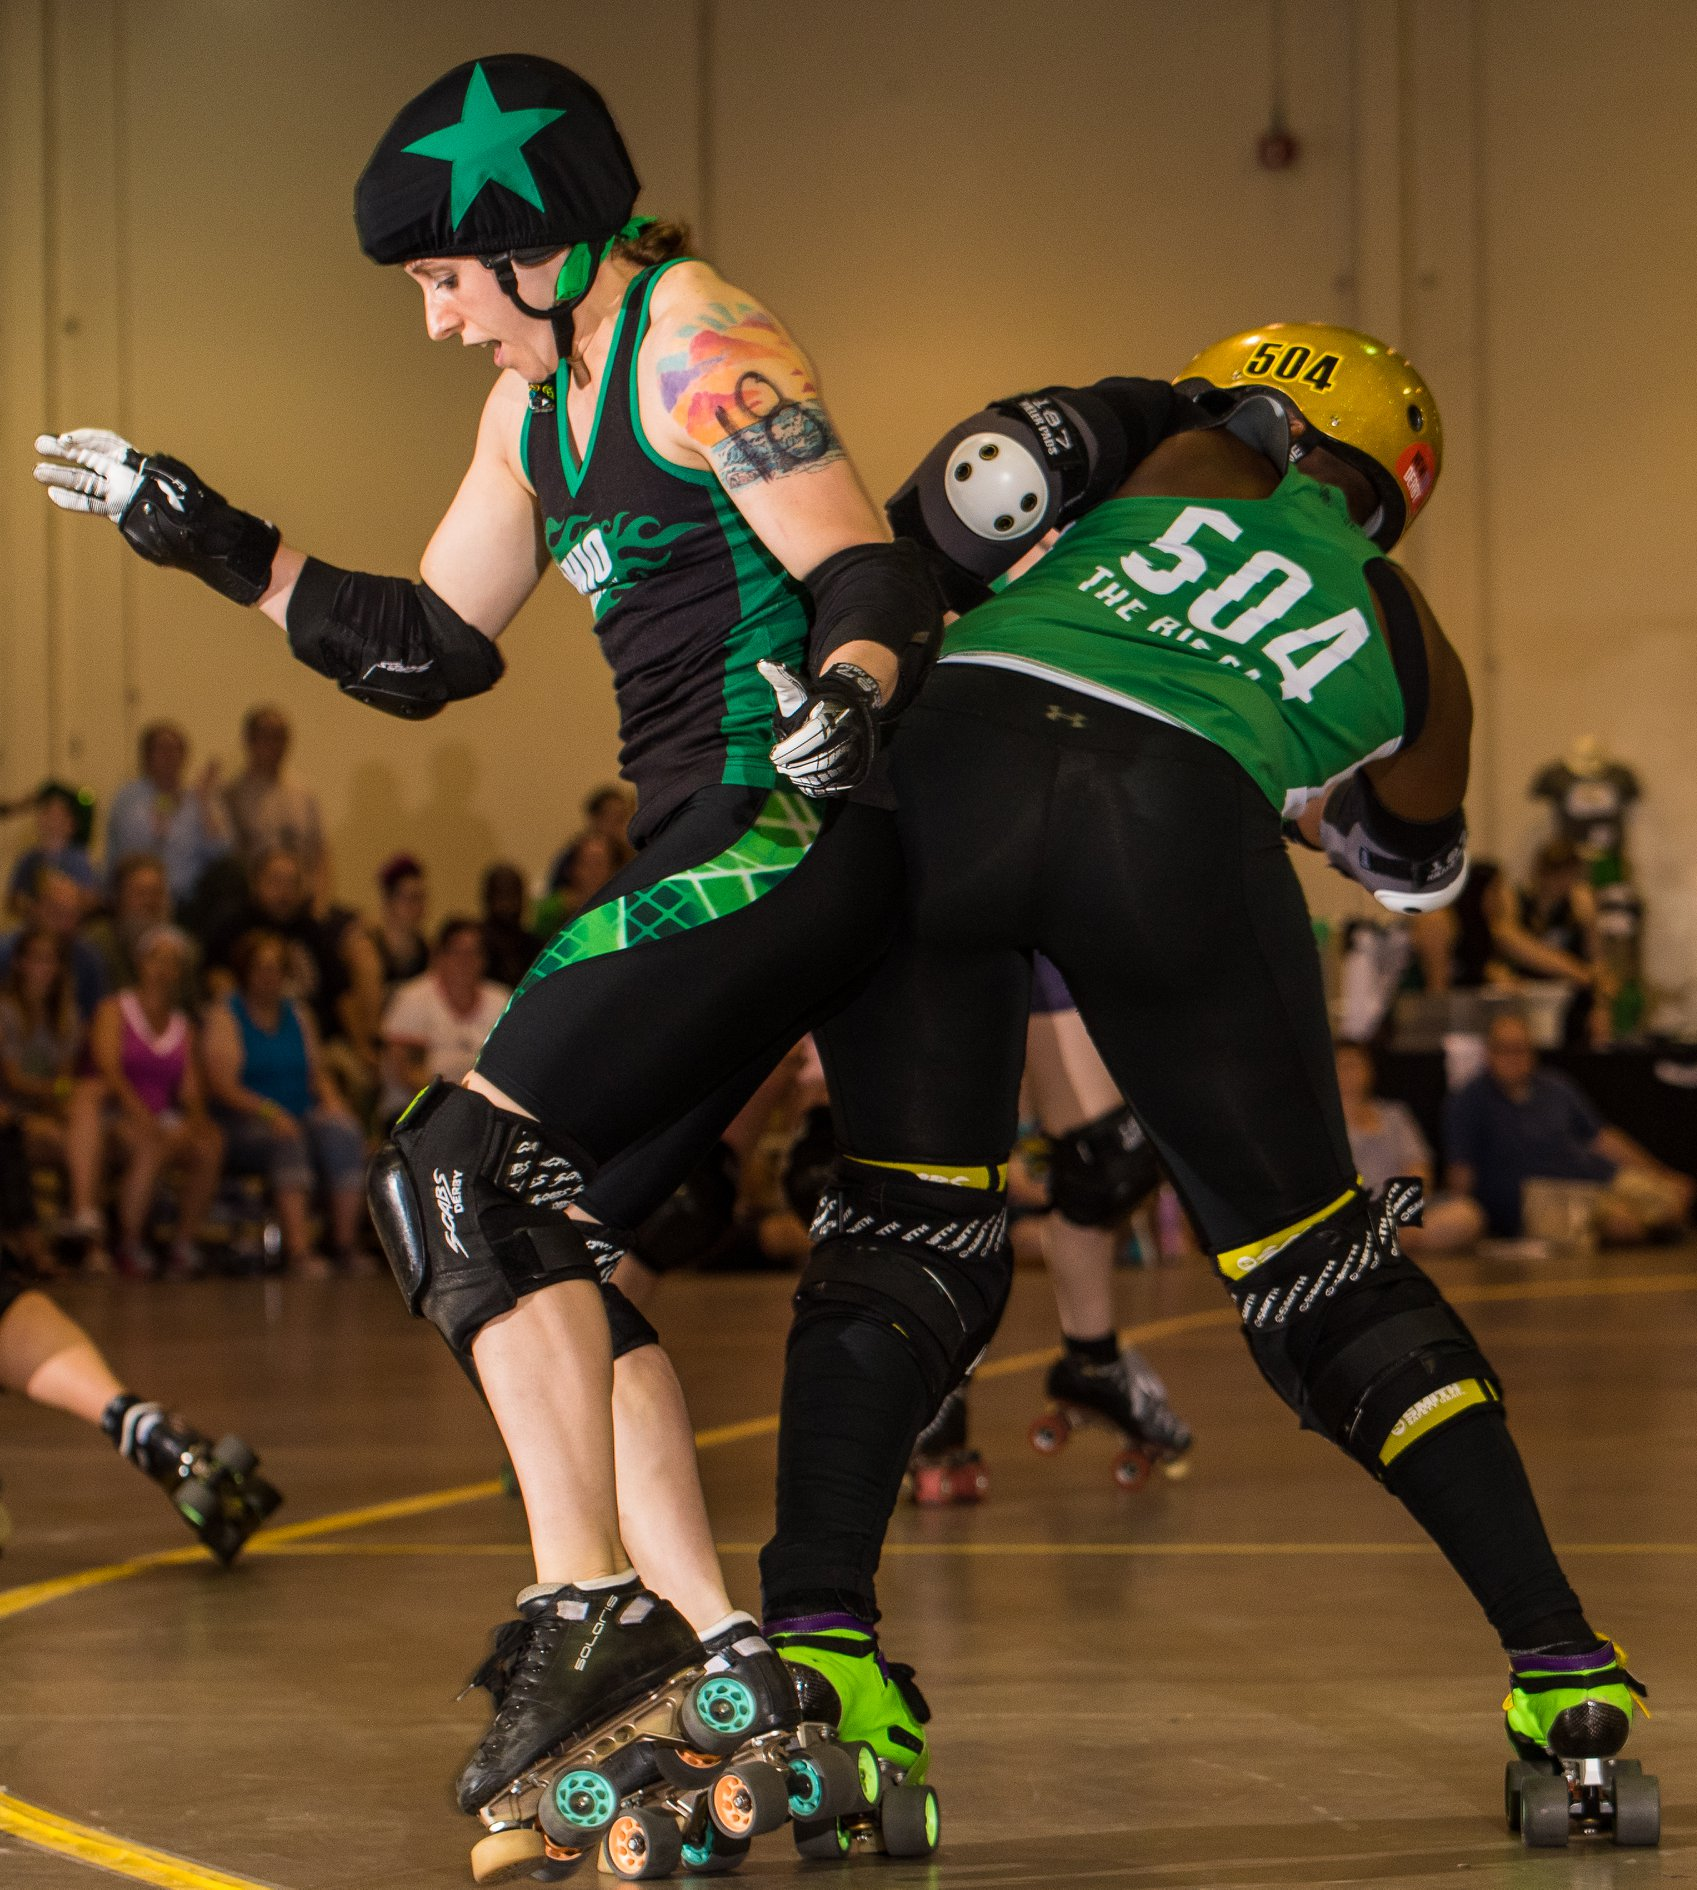 Rigg spinning off blocker OHRD vs Classic City 6.29.19 Chris Baker